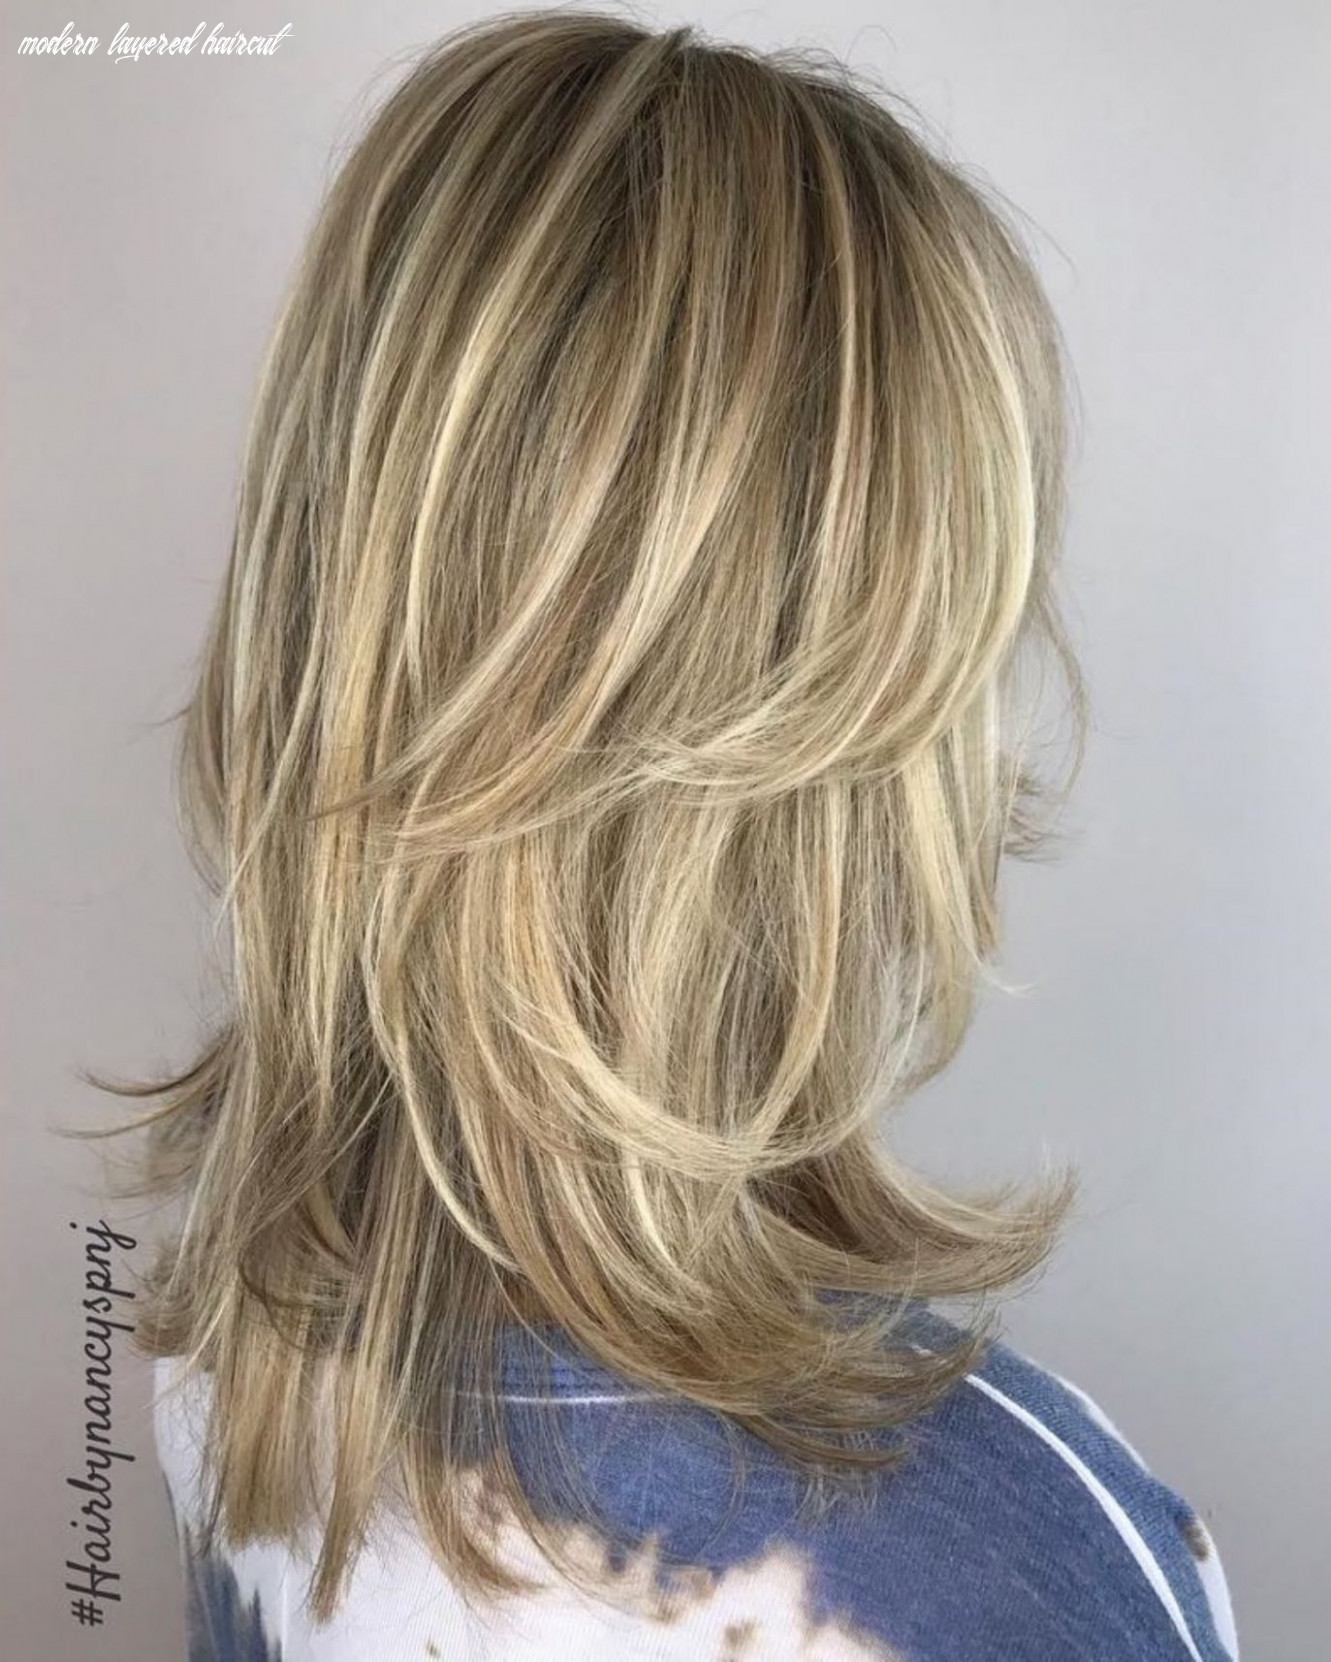 12 Most Universal Modern Shag Haircut Solutions (With images ...